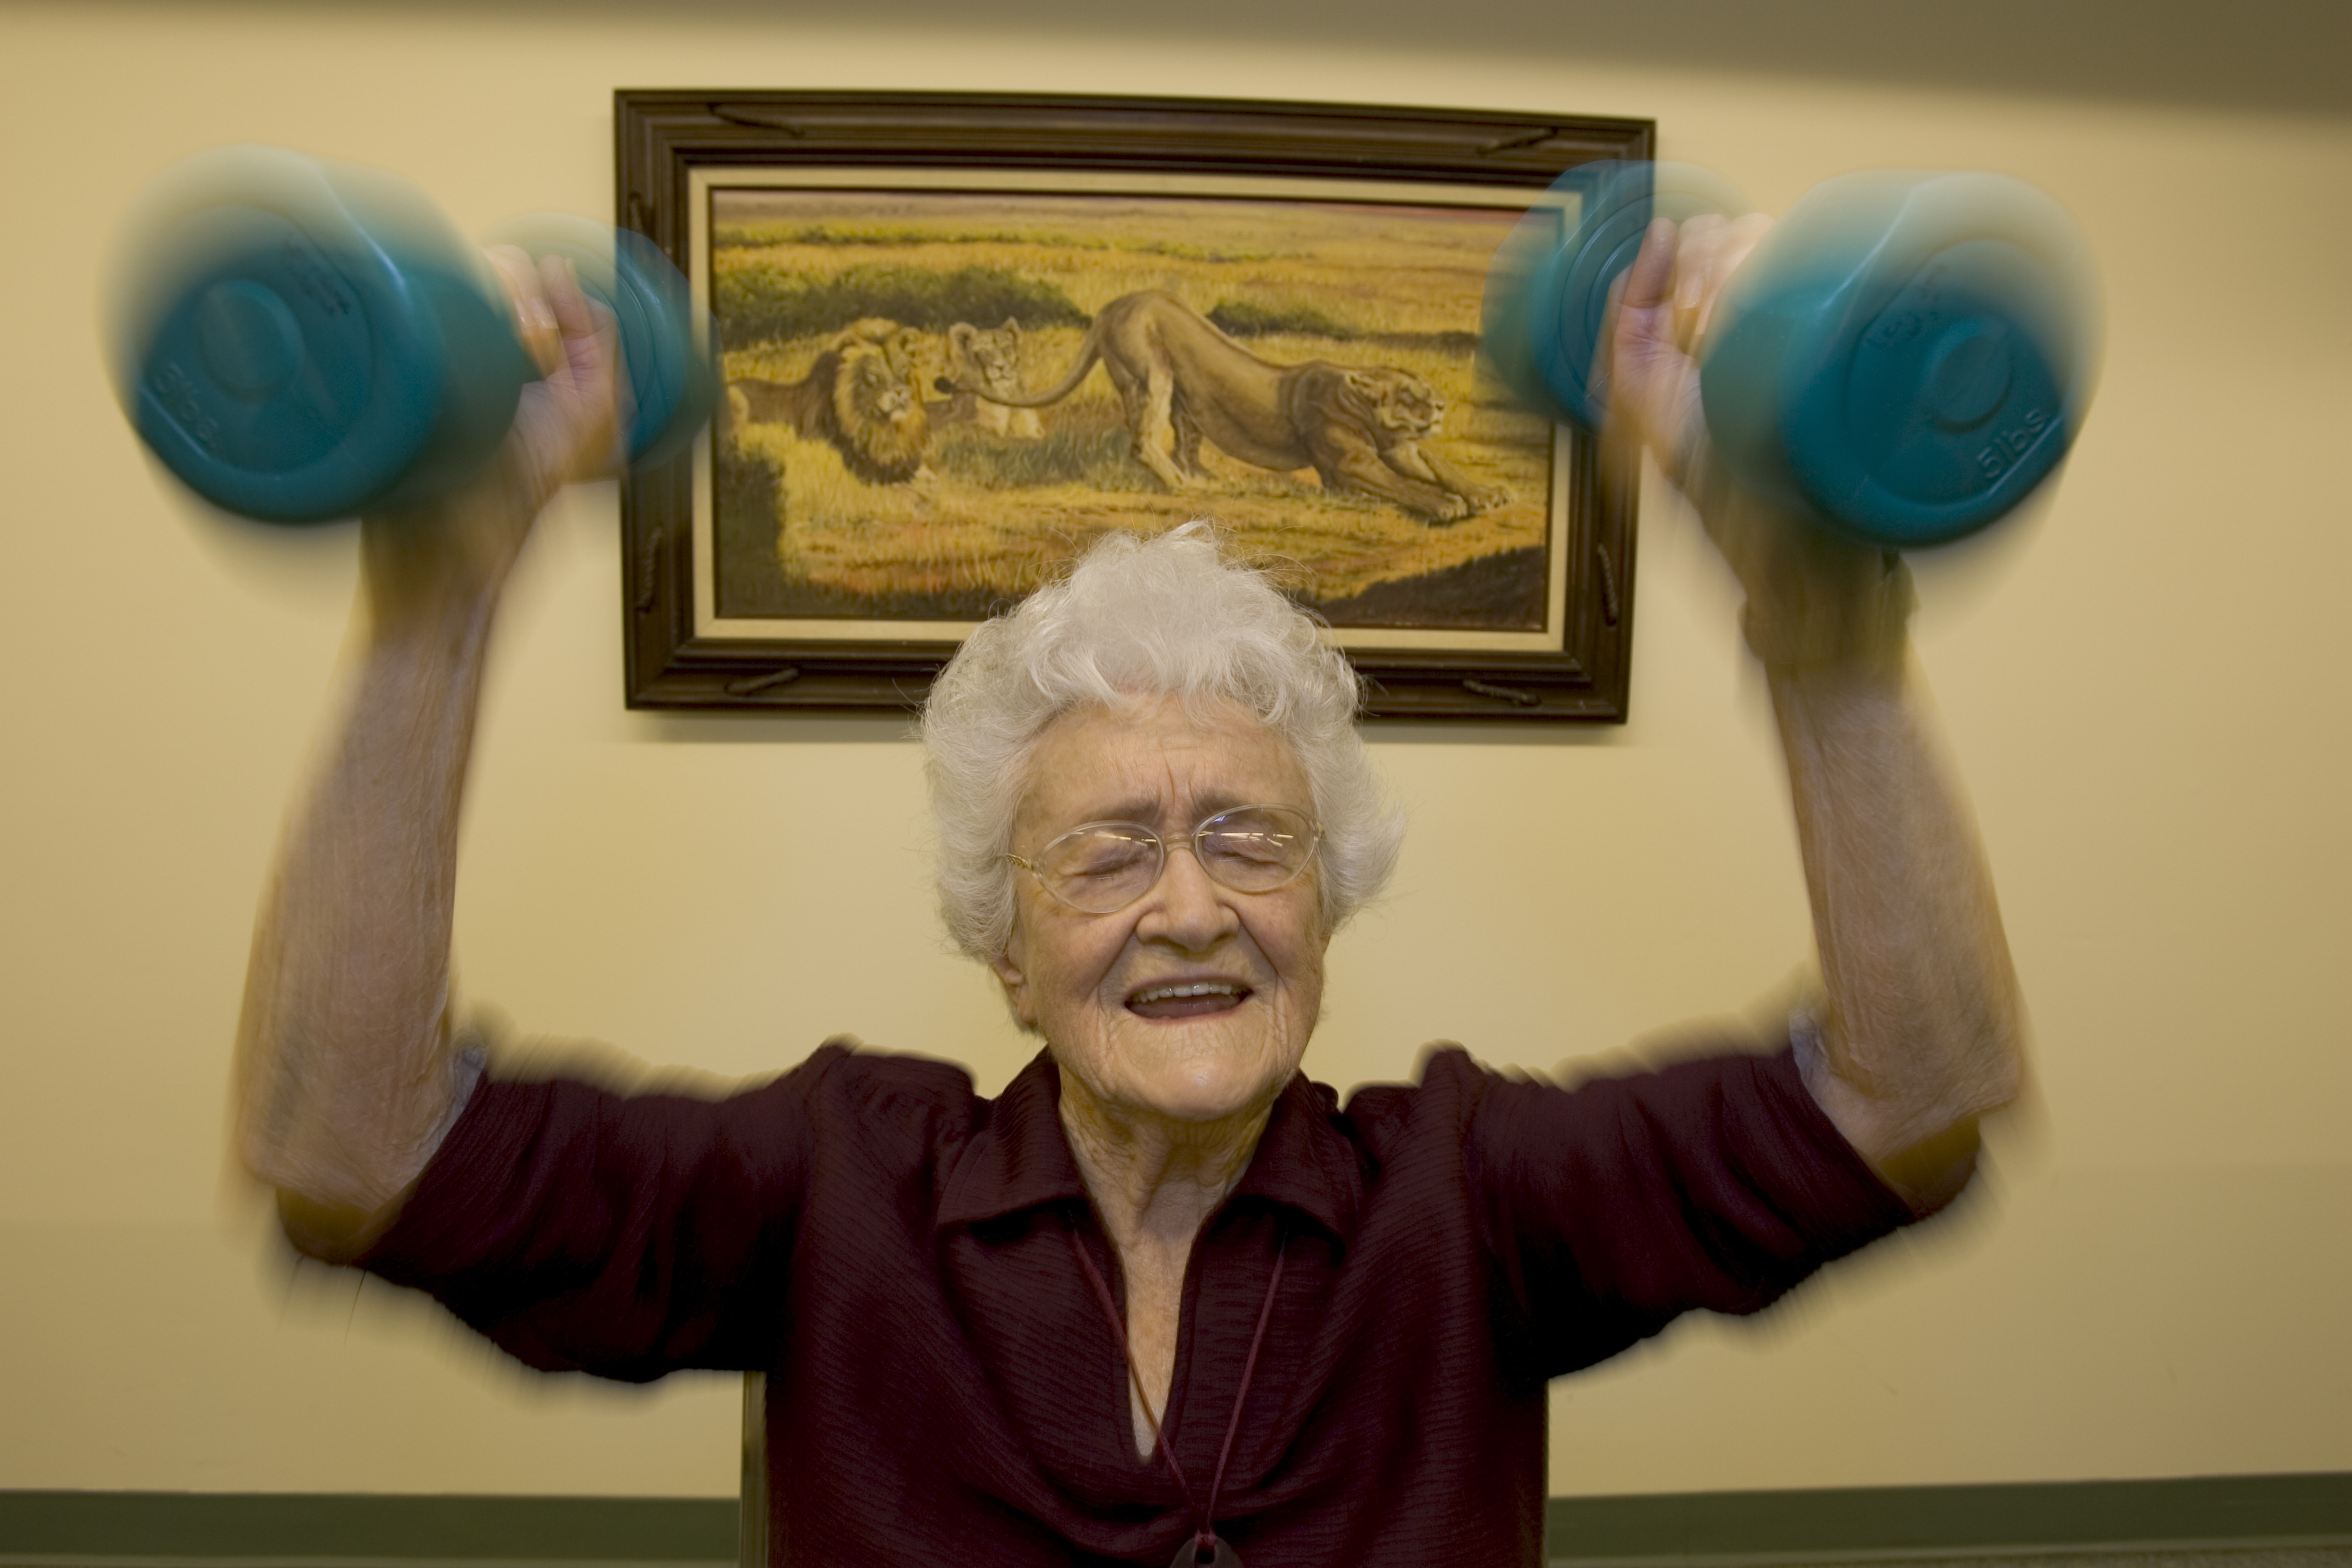 Marge Jetton, shown here at age 100, lifted weights every day. Her life story was featured in a National Geographic story on longevity in 2005, and she died at age 106 in 2011.